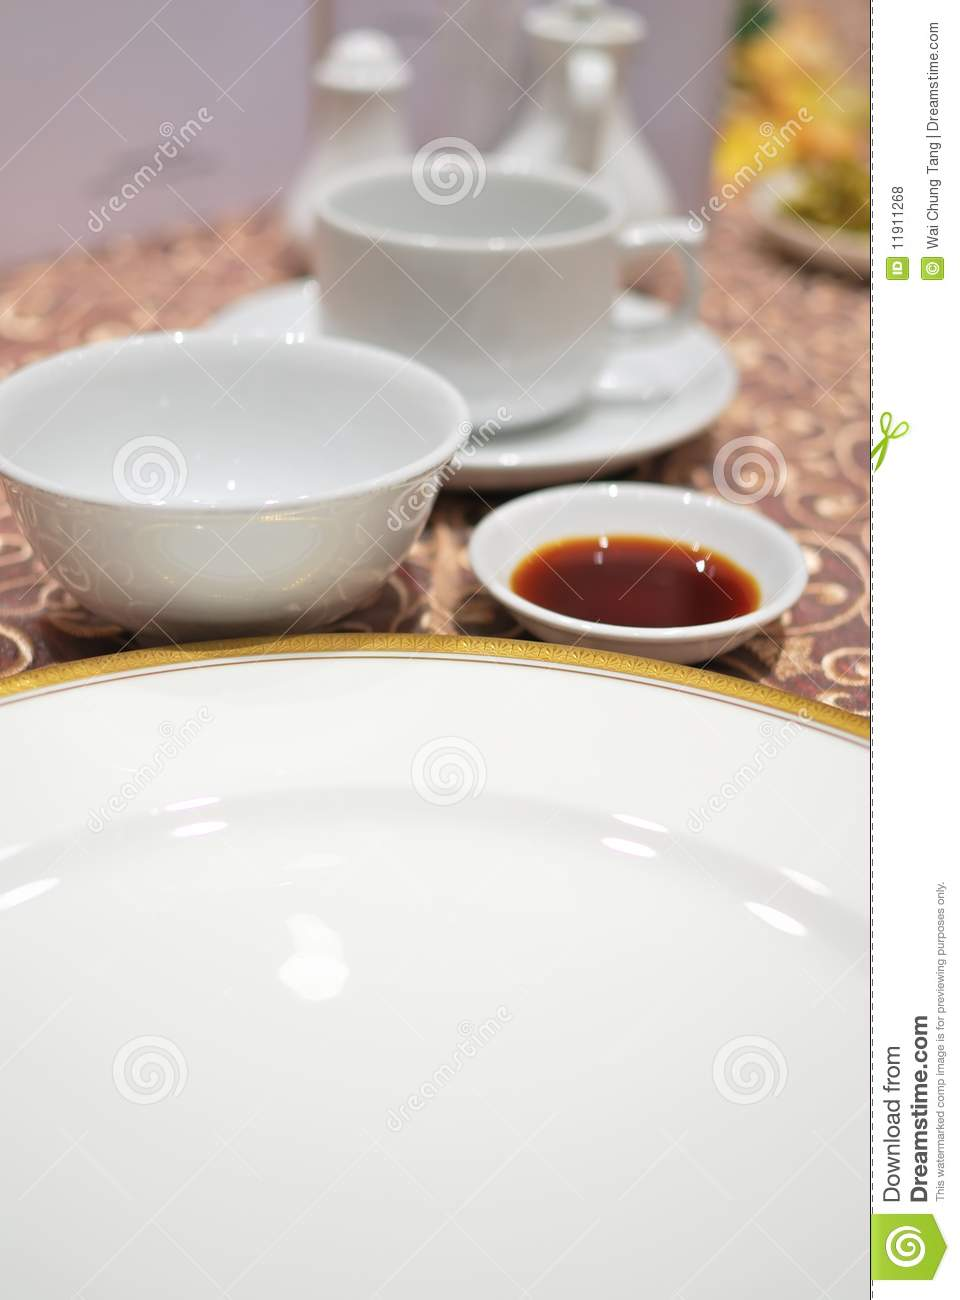 Restaurant table layout royalty free stock photos image